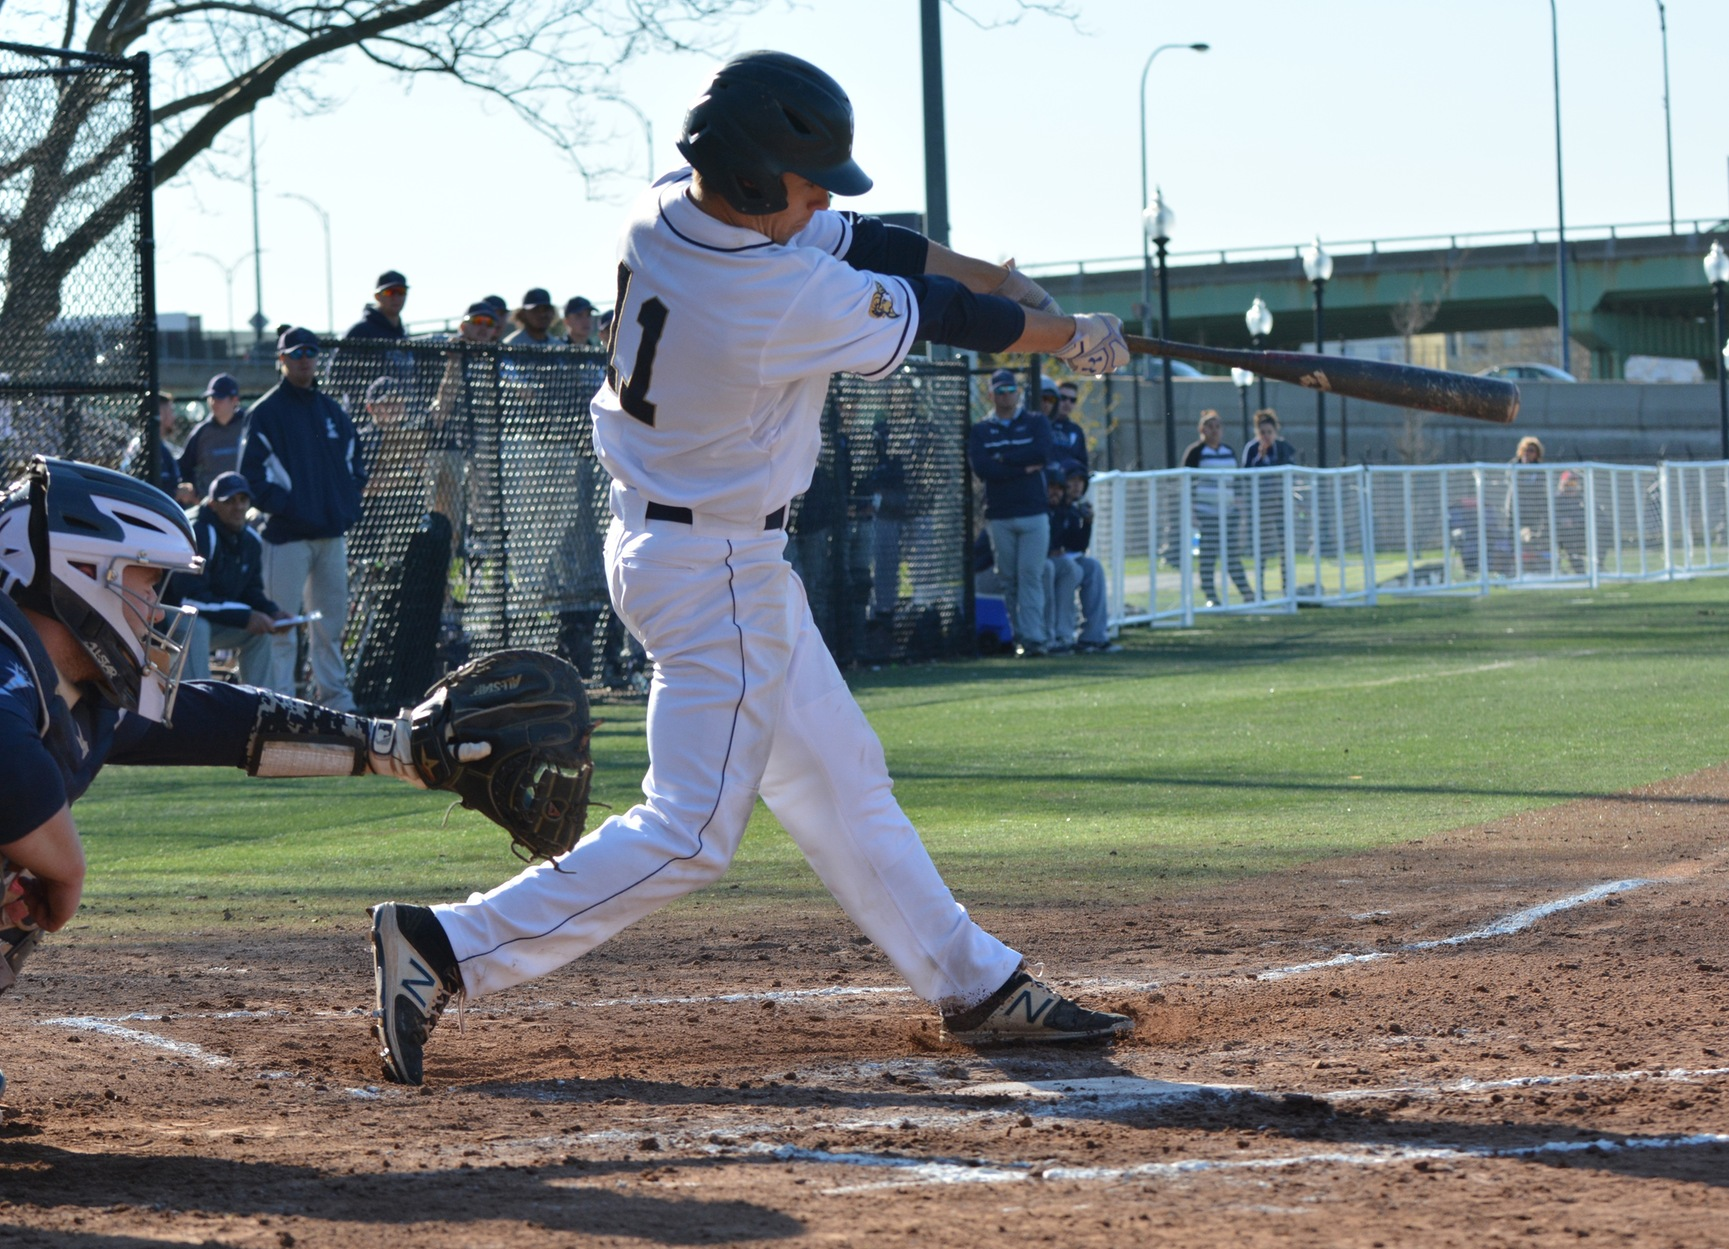 Cameron Does It Again, Baseball Walks Off With 4-3 Win over Lasell